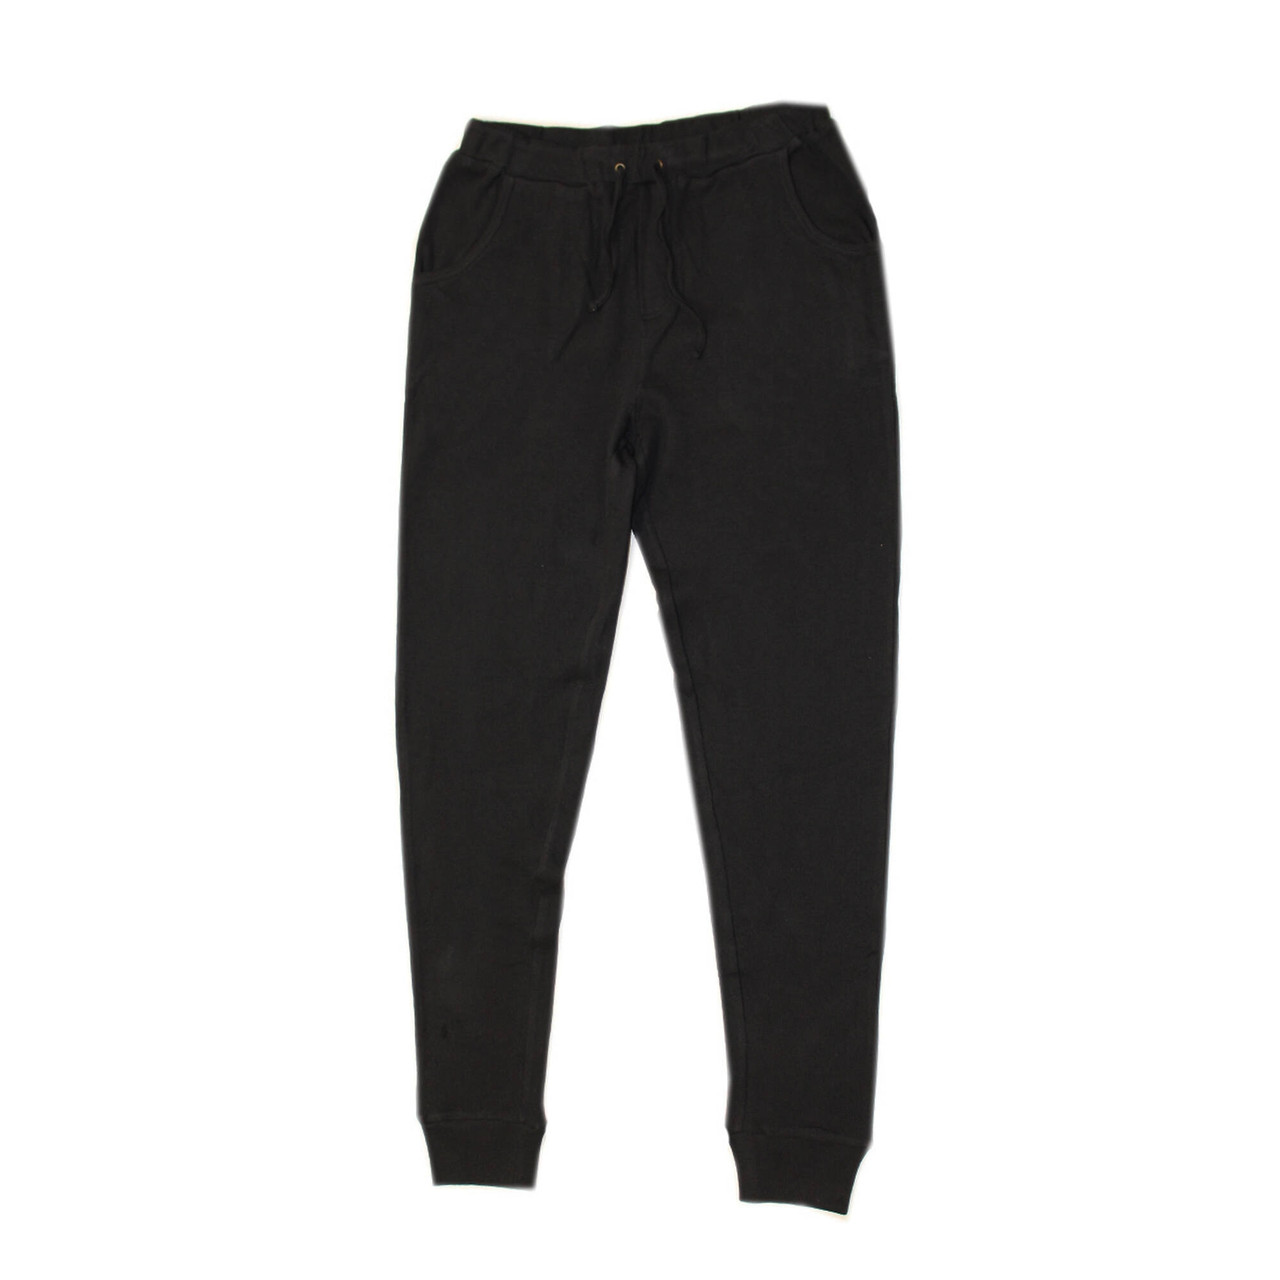 Organic Thermal Men's Jogger Pants in Black, Flat